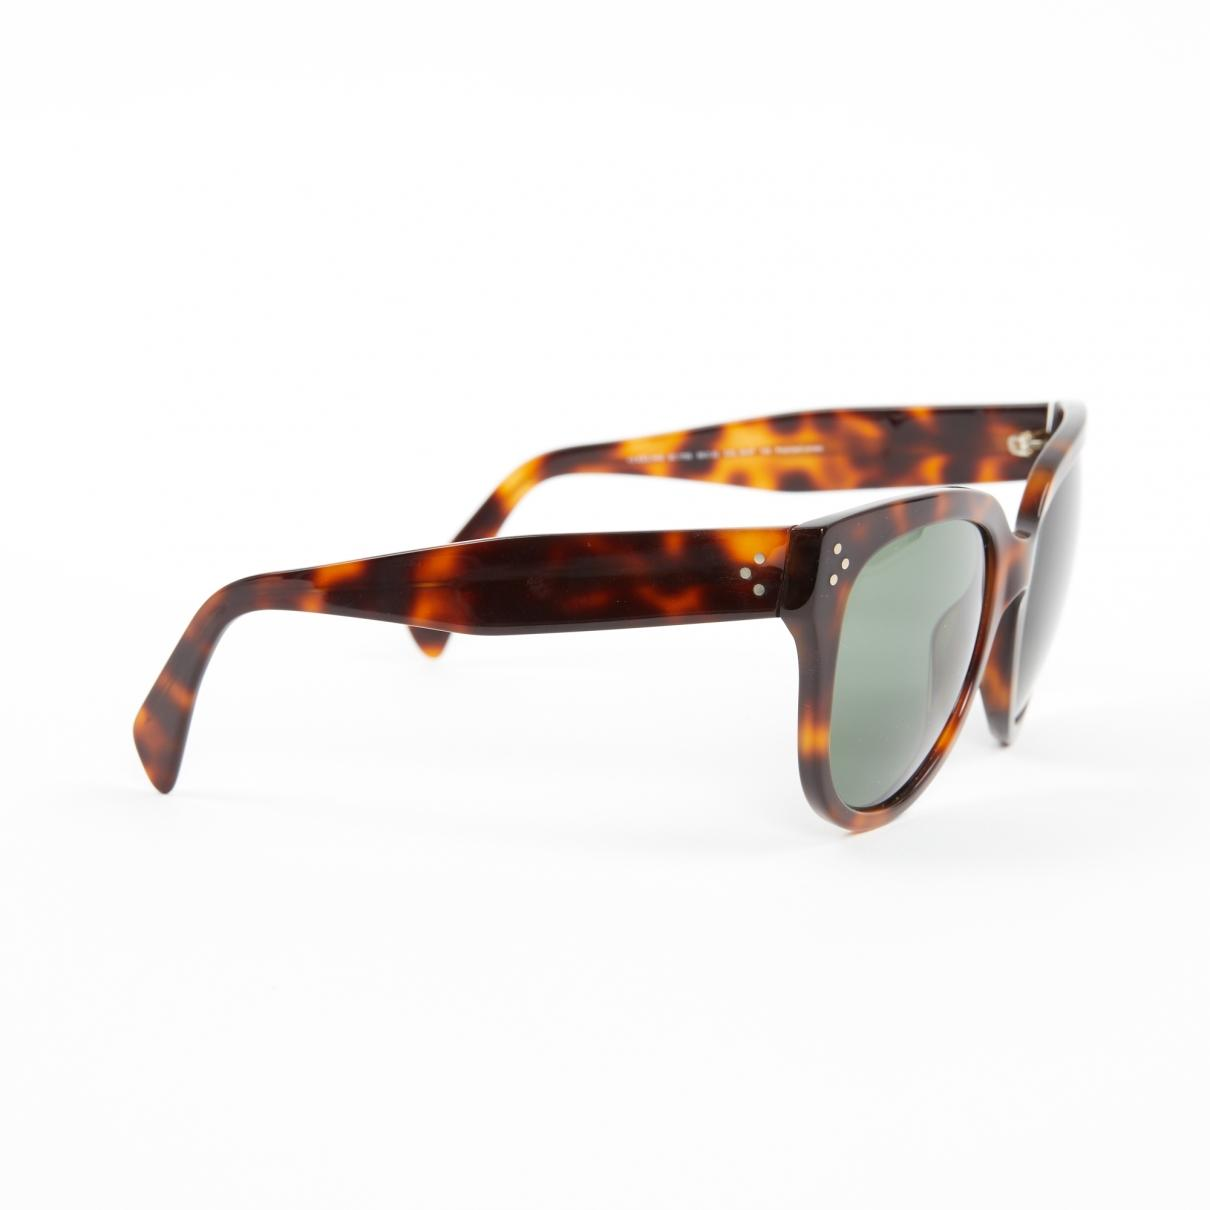 af0cd4d8694f Céline - Luca Brown Plastic Sunglasses - Lyst. View fullscreen